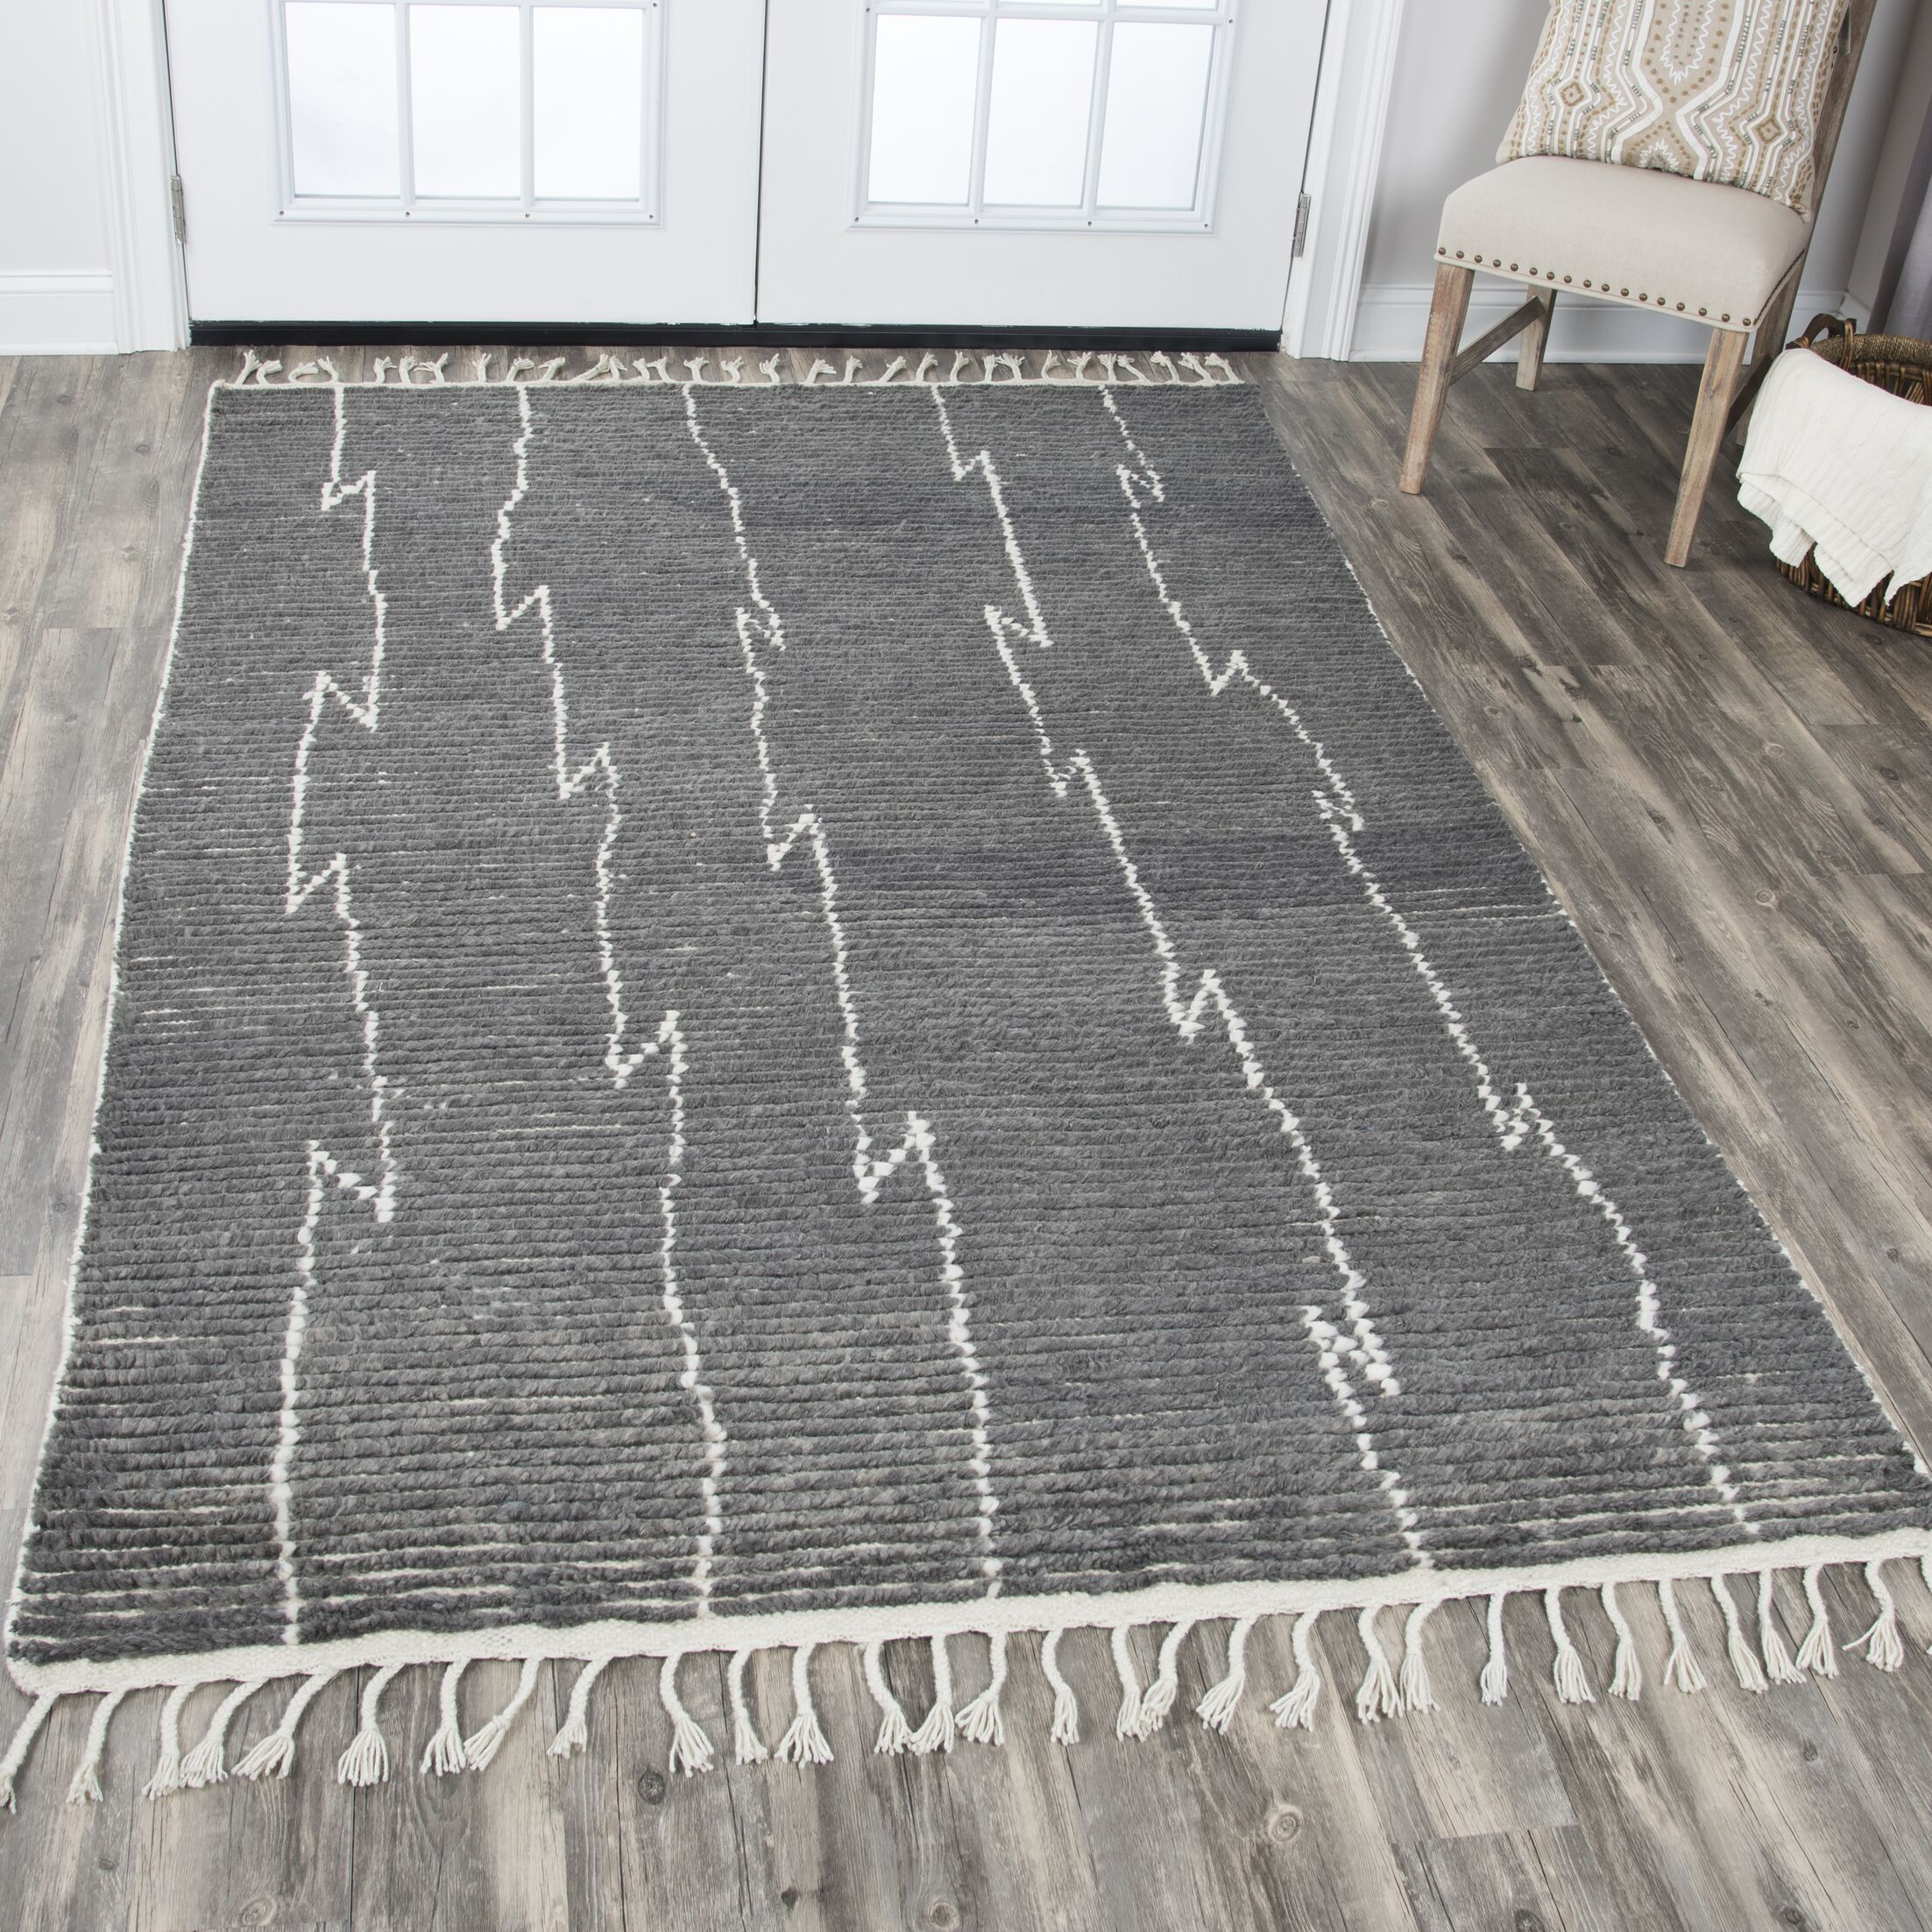 Doleman Hand-Knotted Wool Gray Area Rug Rug Size: Rectangle 5'6